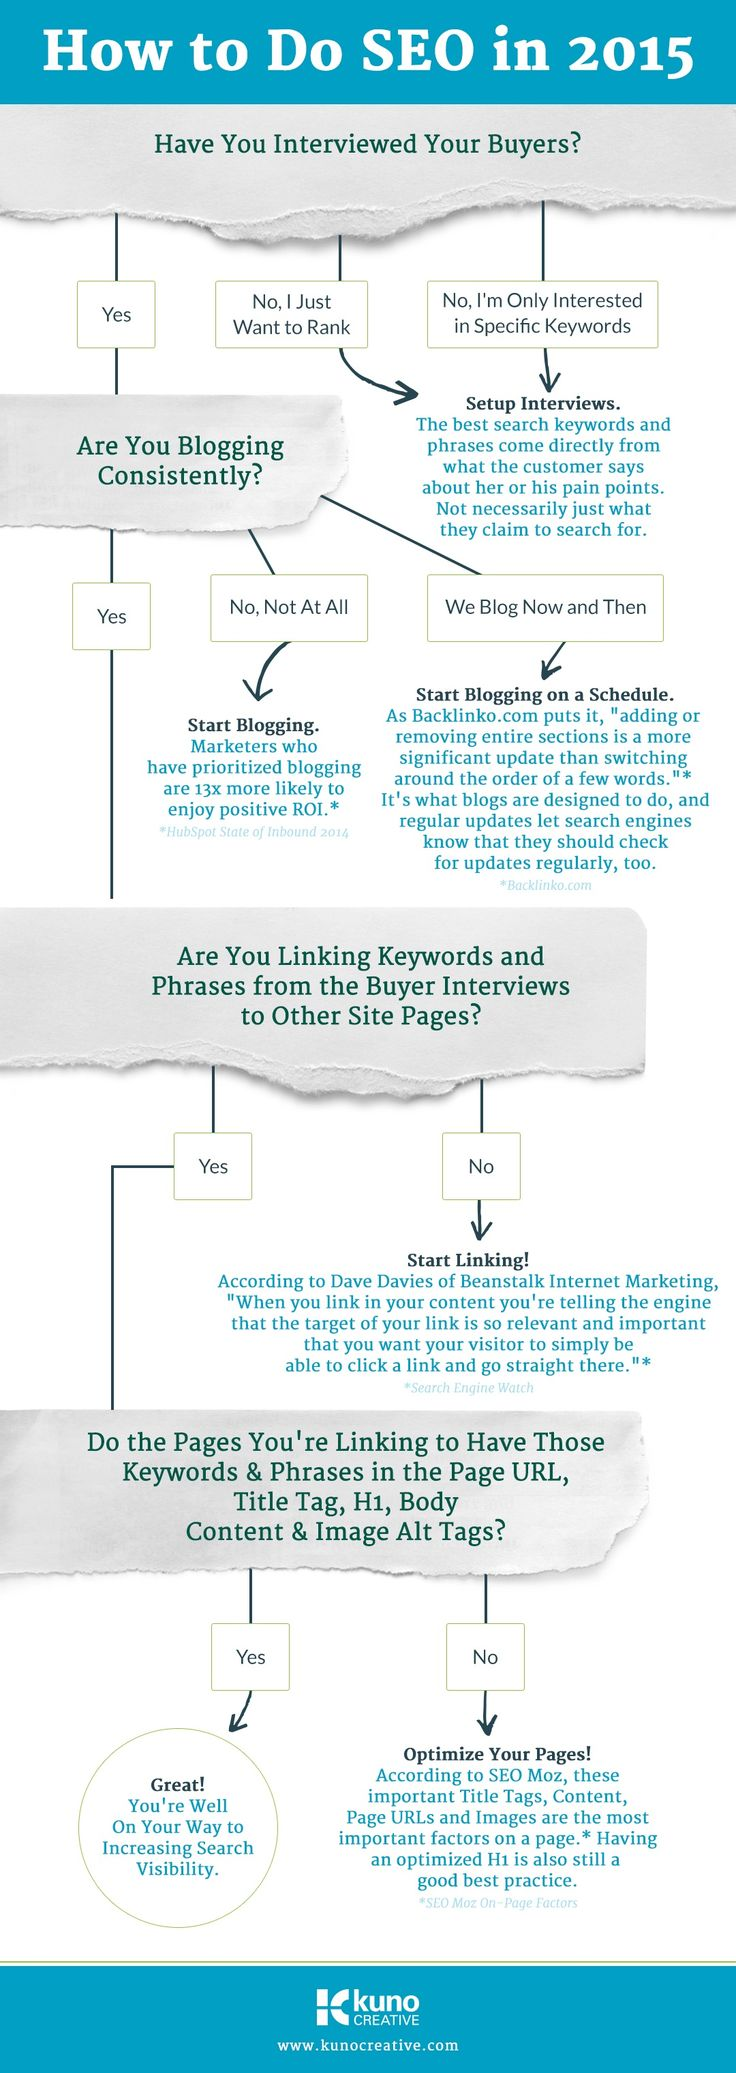 #Howto do #SEO in 2015 [#infographic]